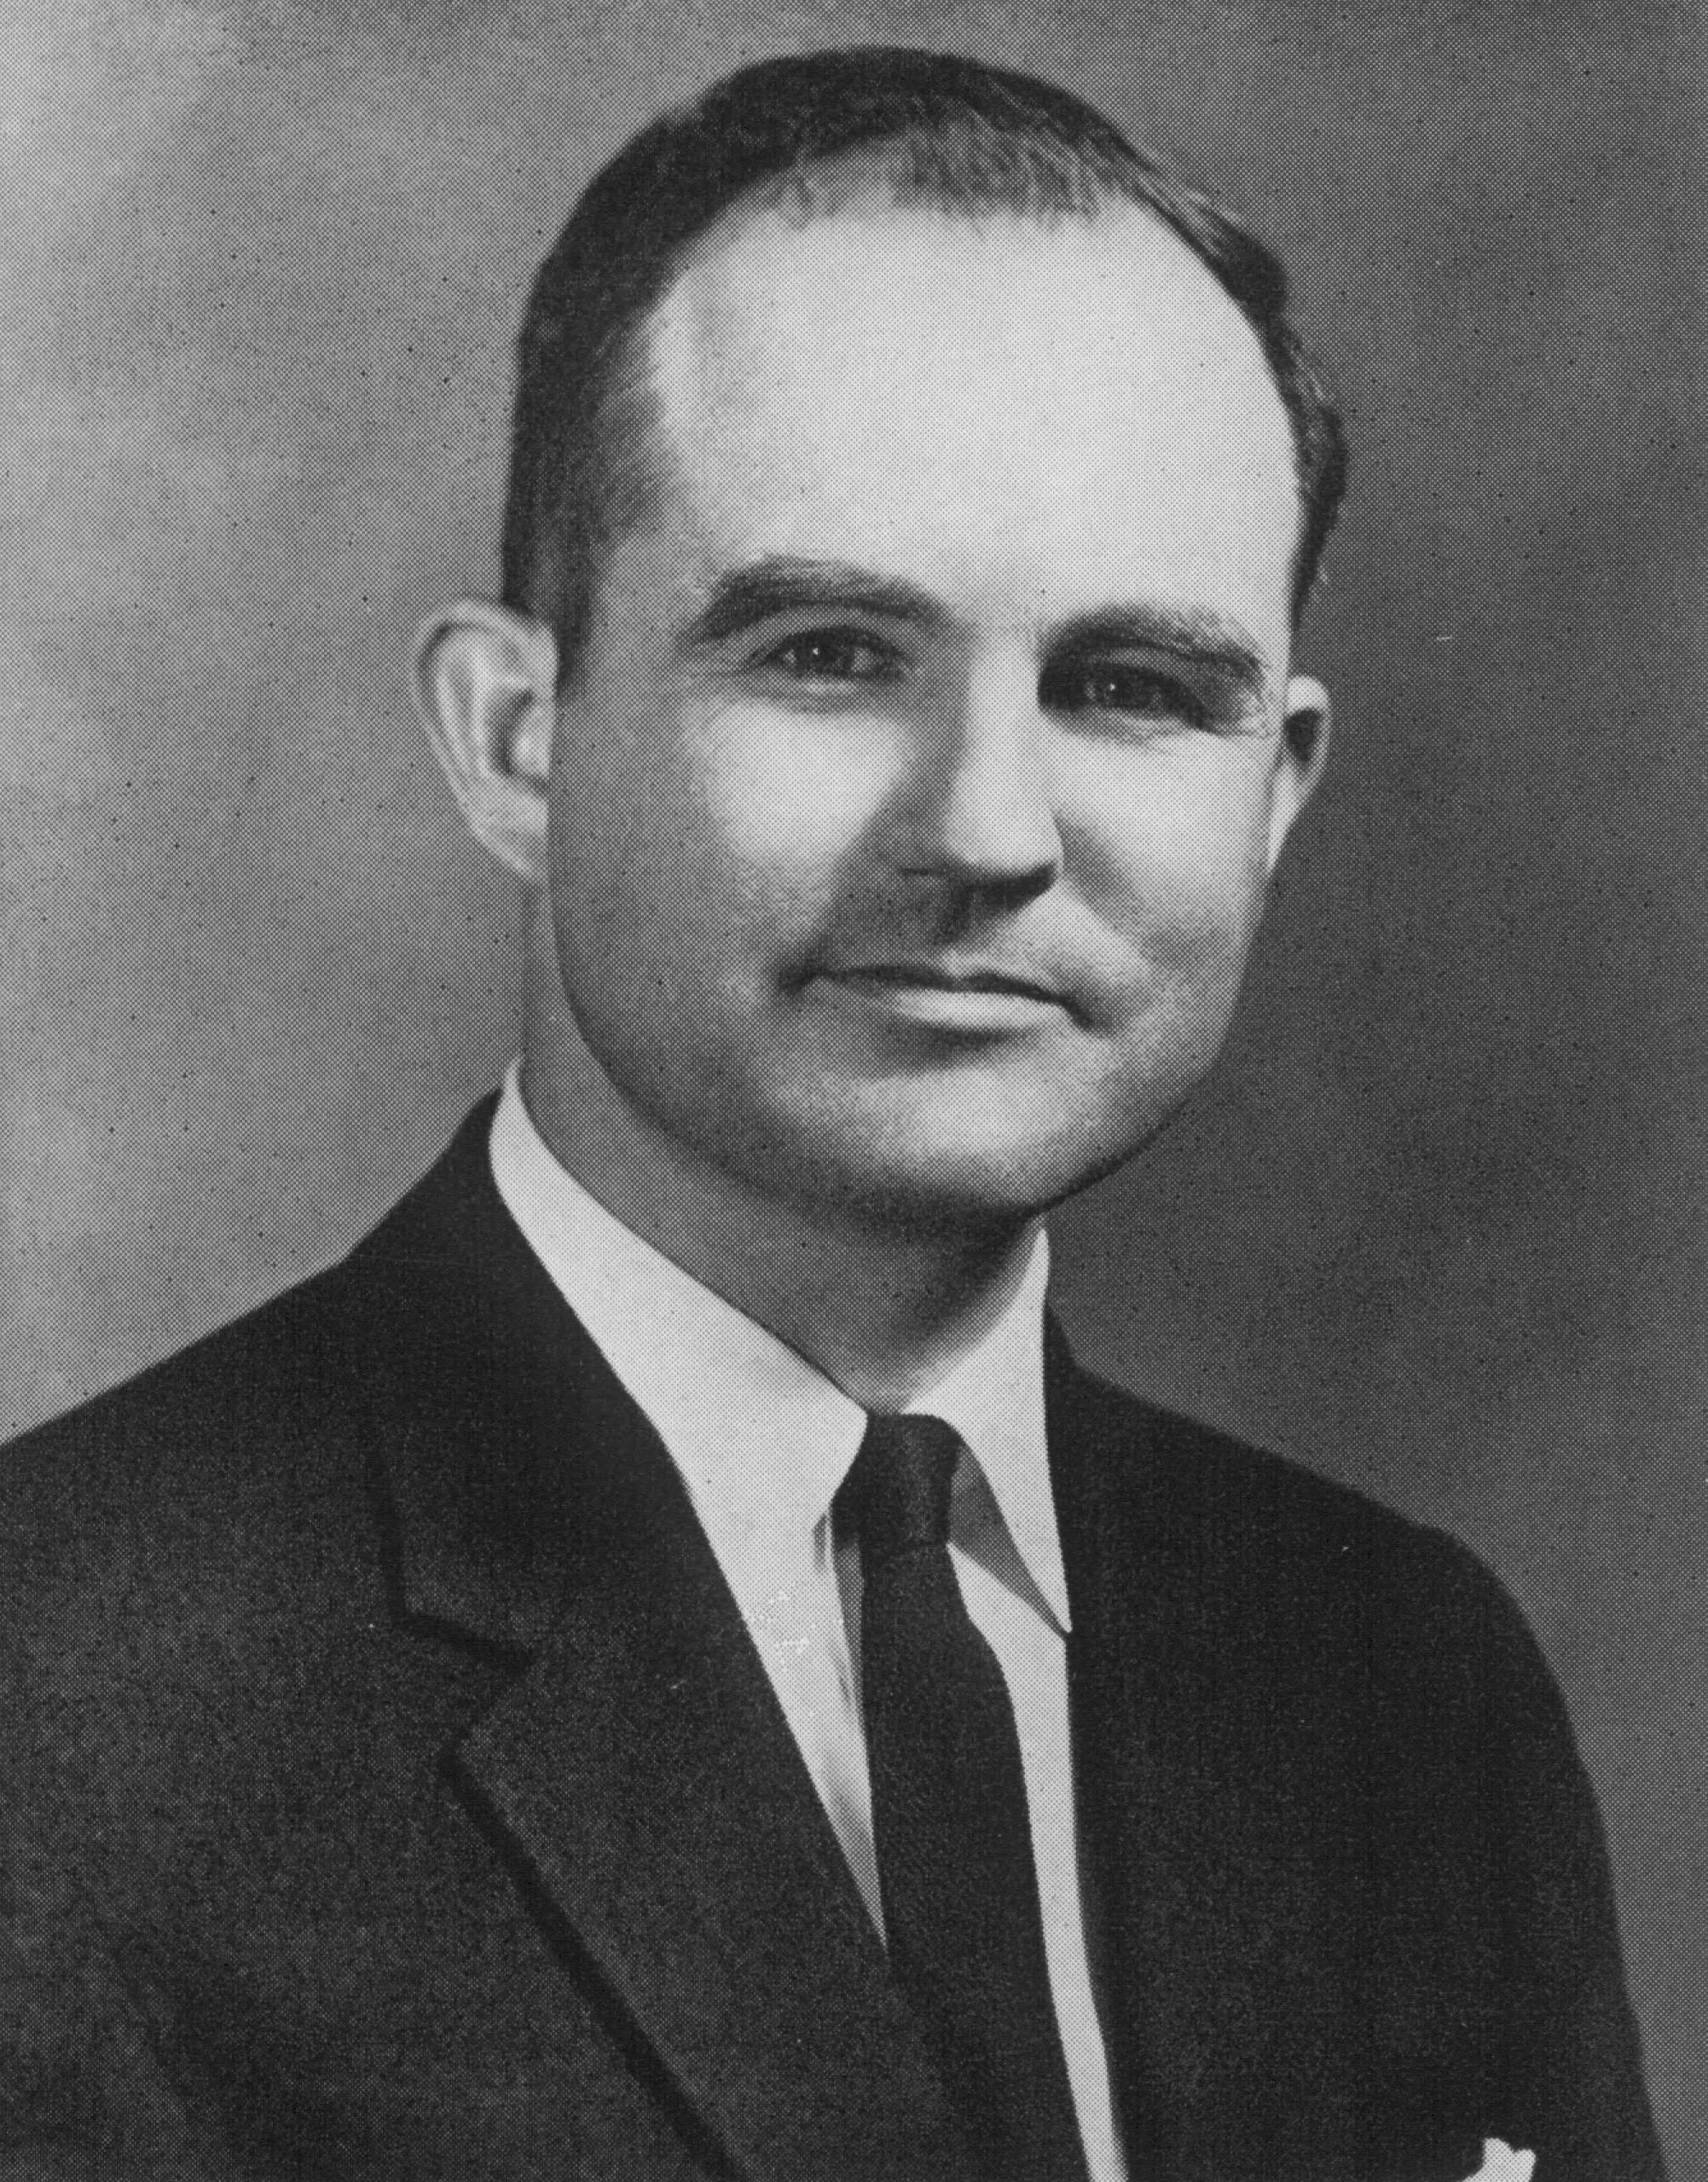 Patterson for Alabama: The Life and Career of John Patterson